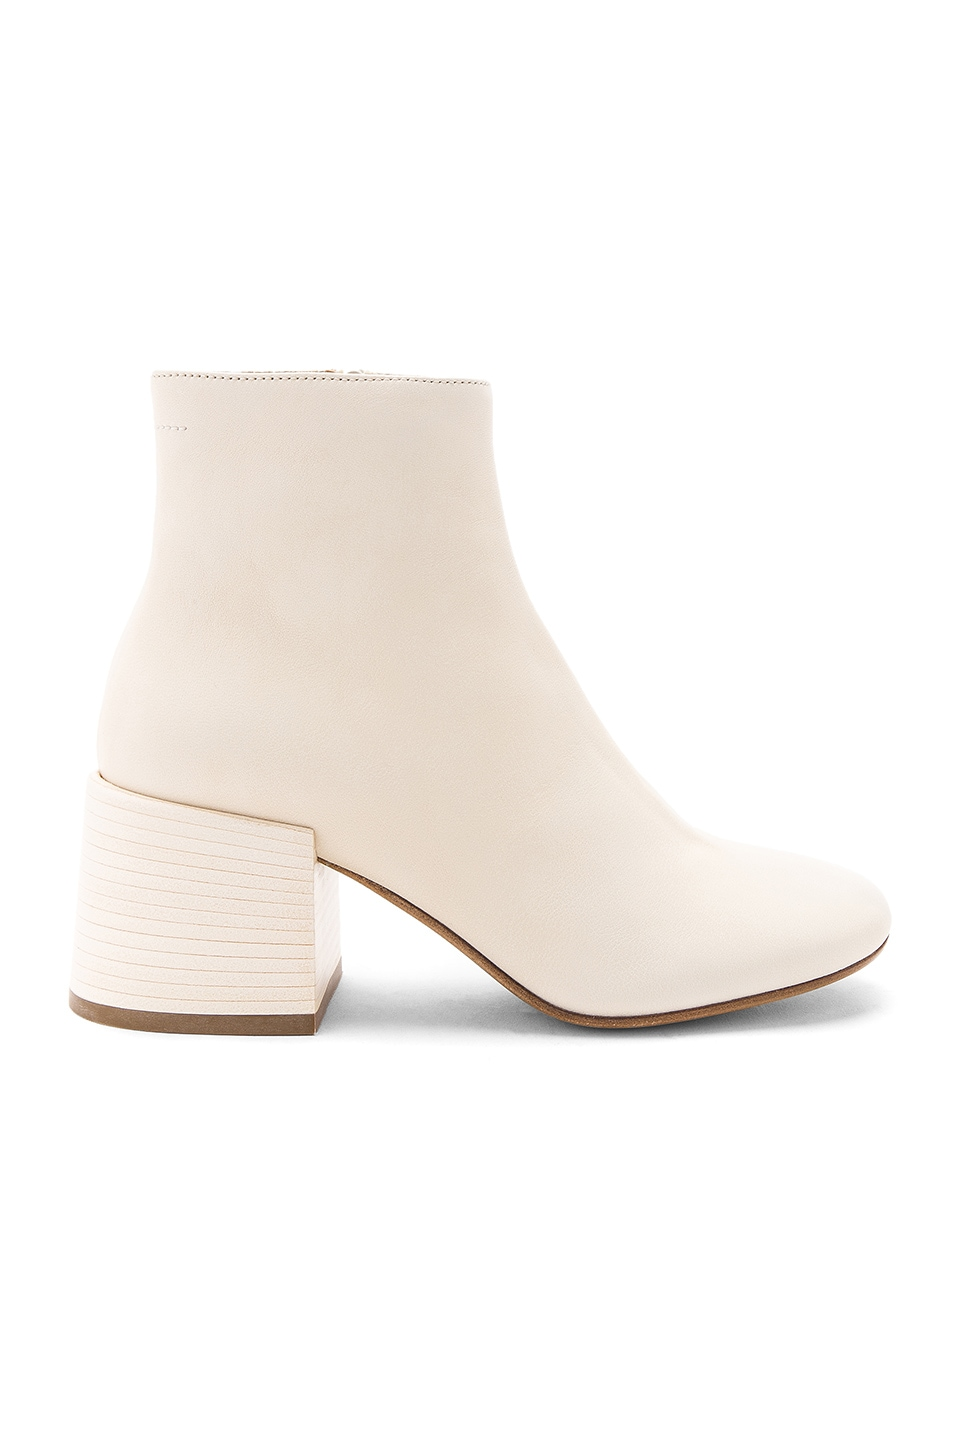 Flare Heel Ankle Boots by MM6 Maison Margiela